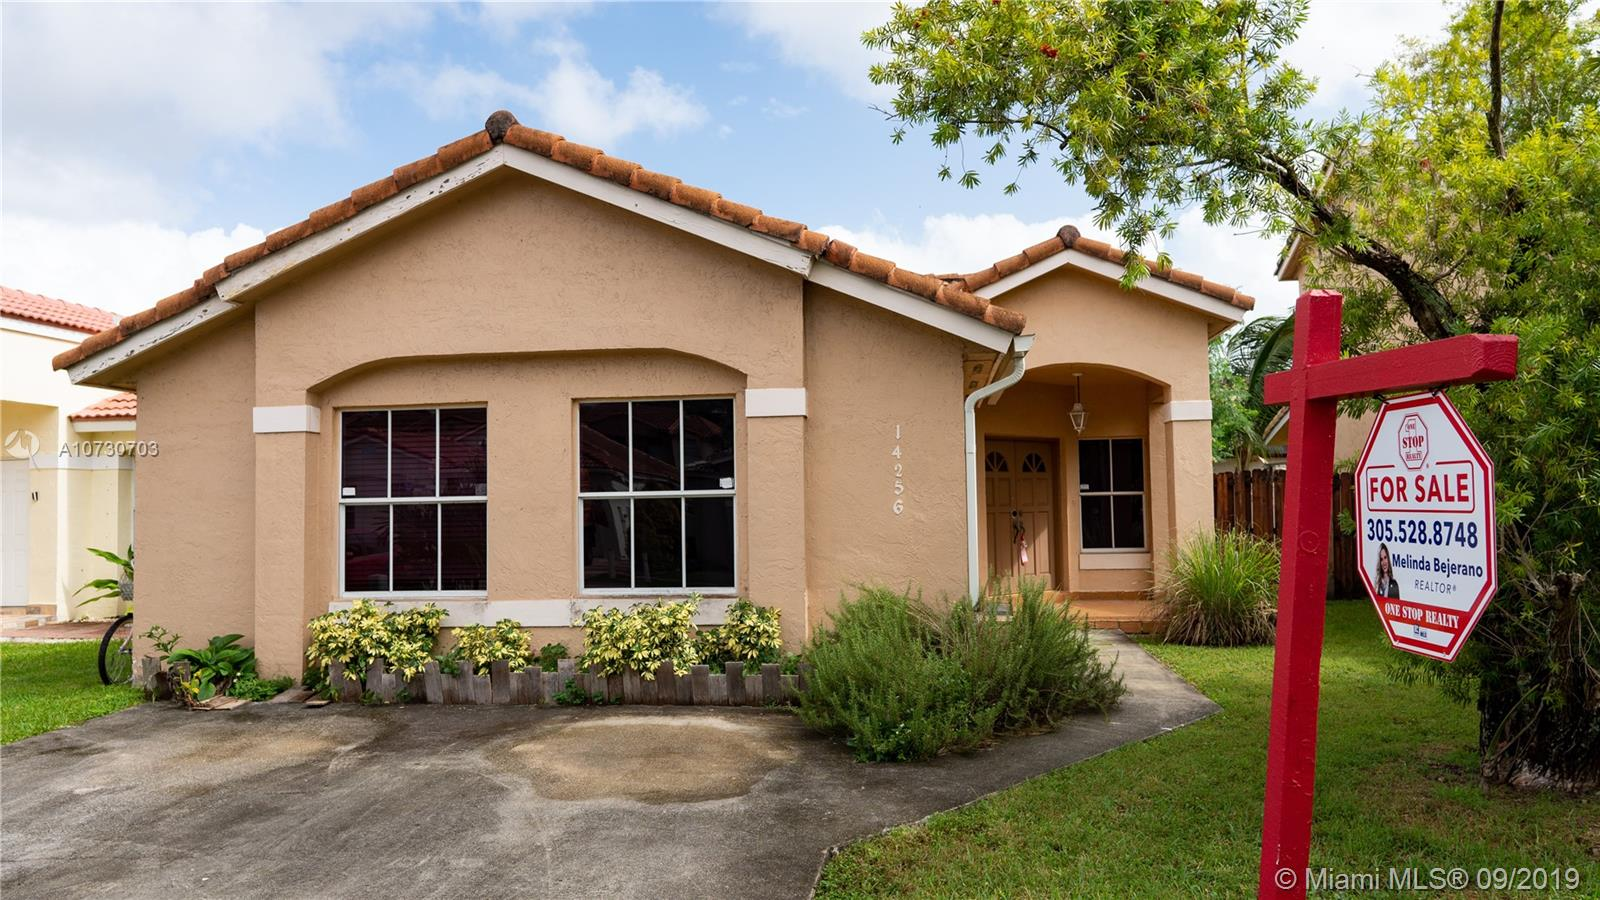 14256 SW 90th Ter, Kendall in Miami-dade County County, FL 33186 Home for Sale